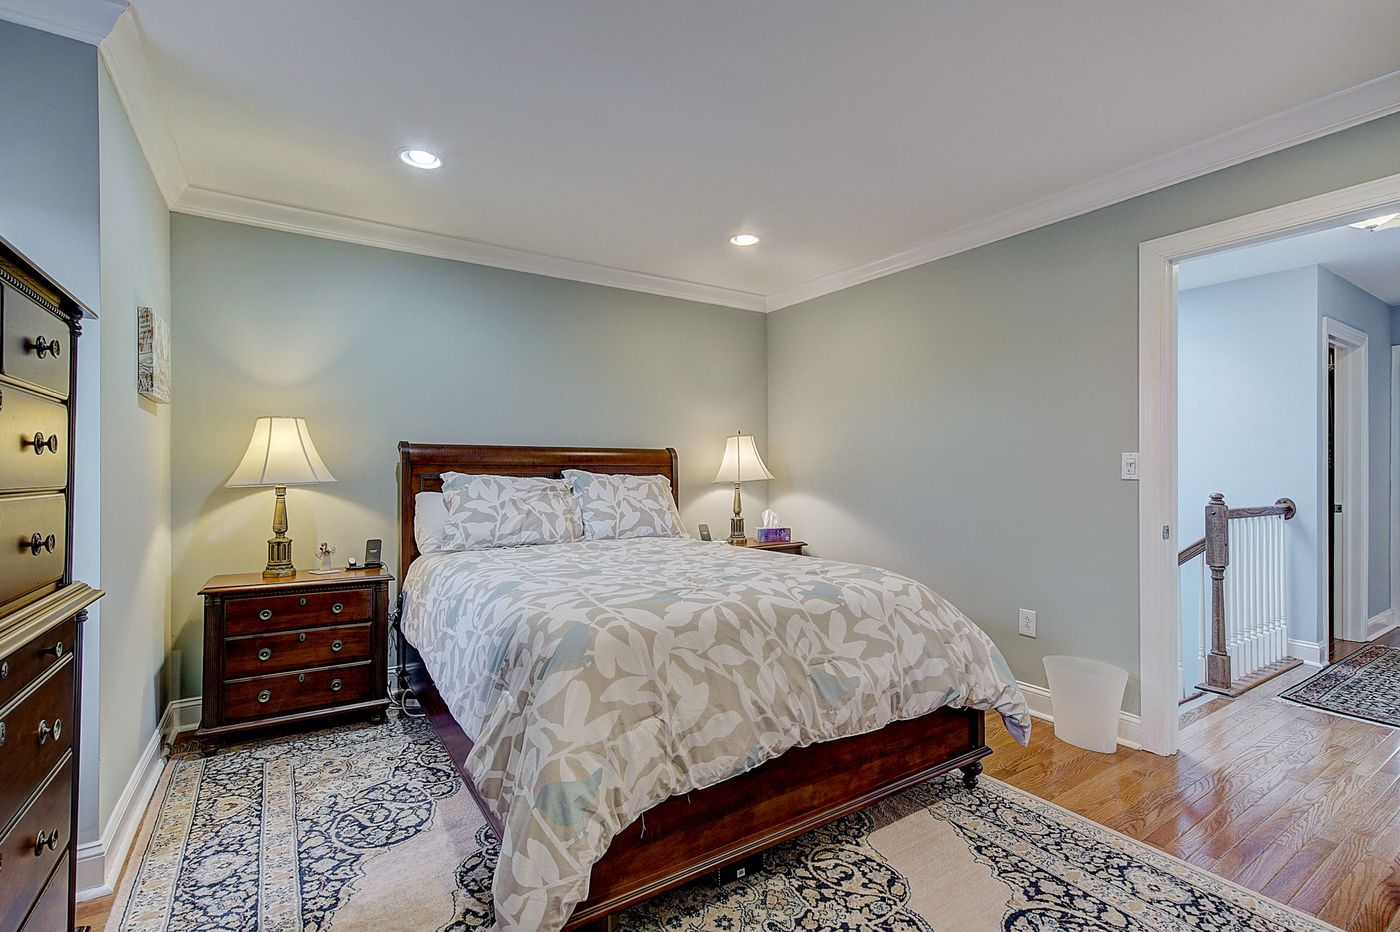 On the market: A Queen Village rowhouse for $600,000